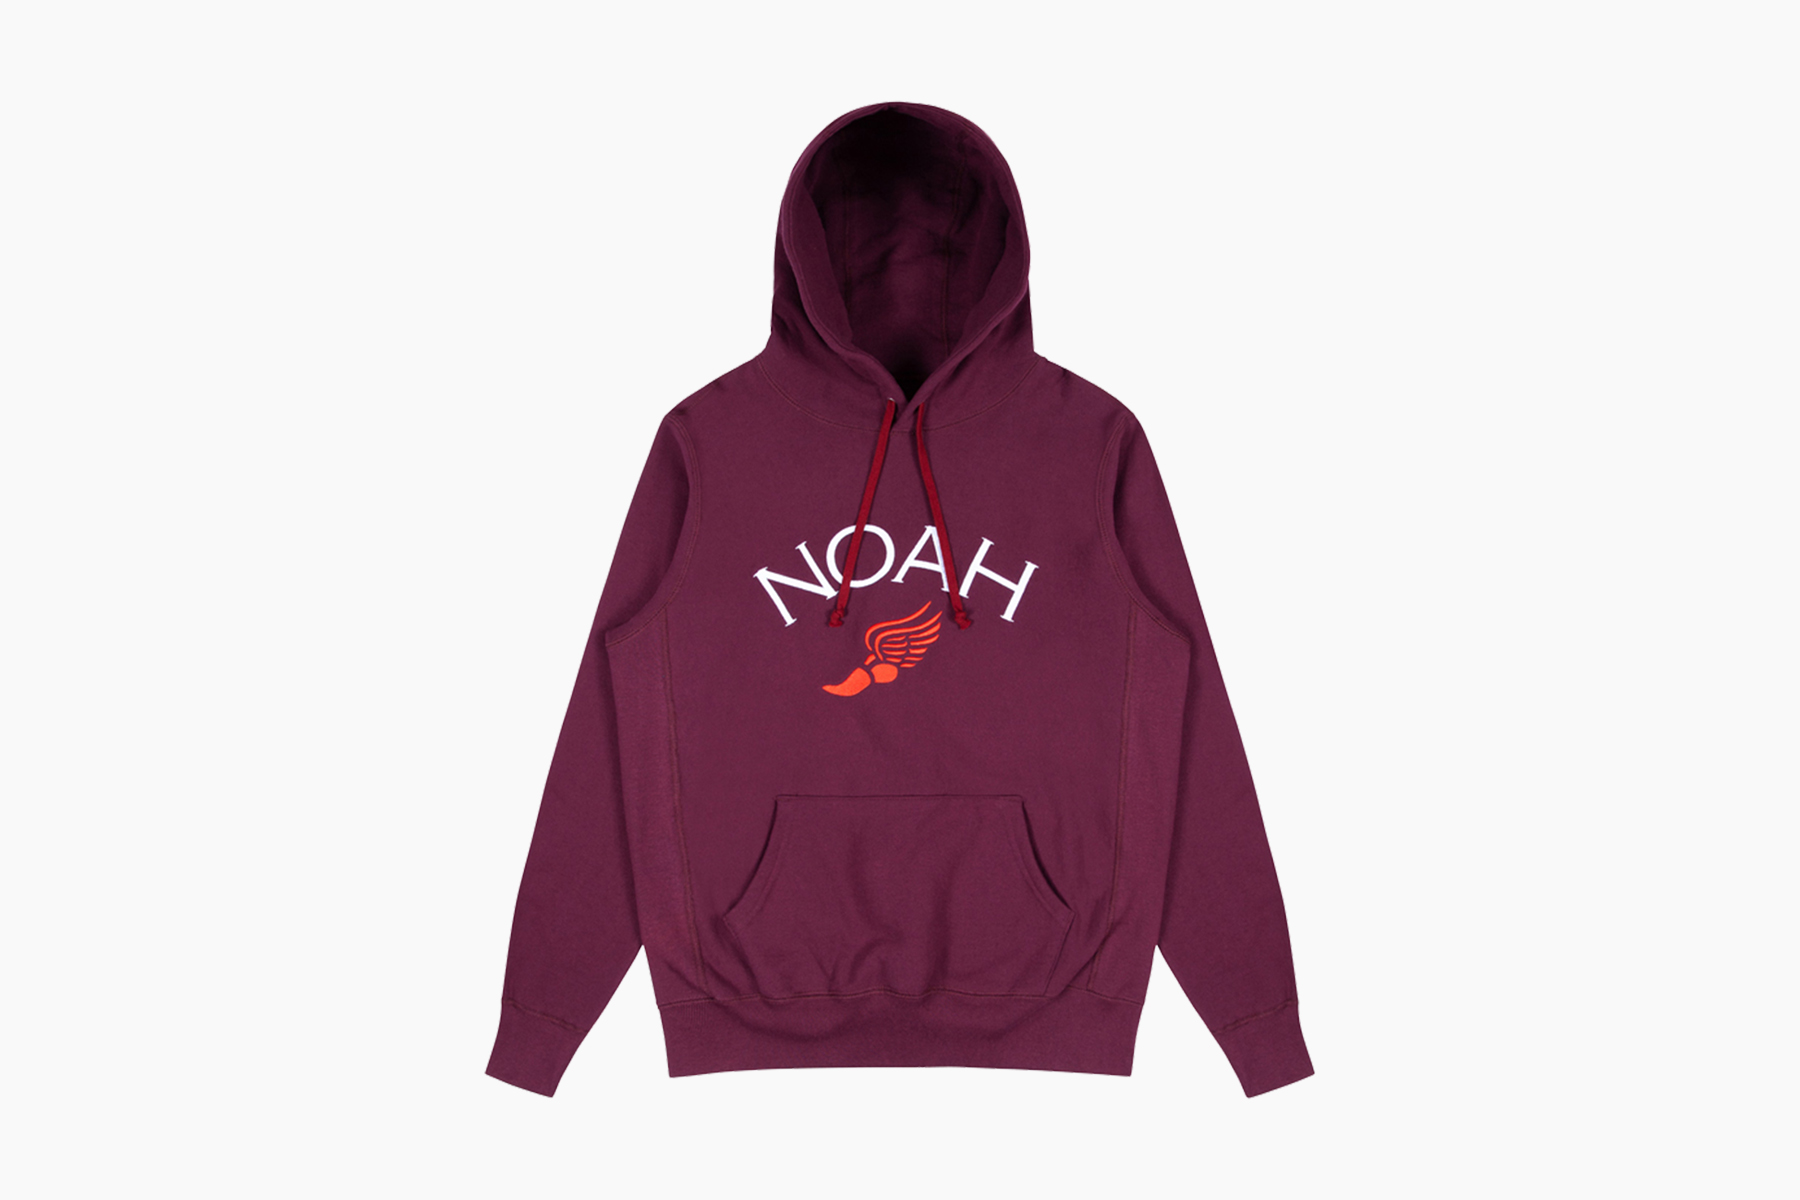 NOAH Embroidered Winged Foot Hoodie